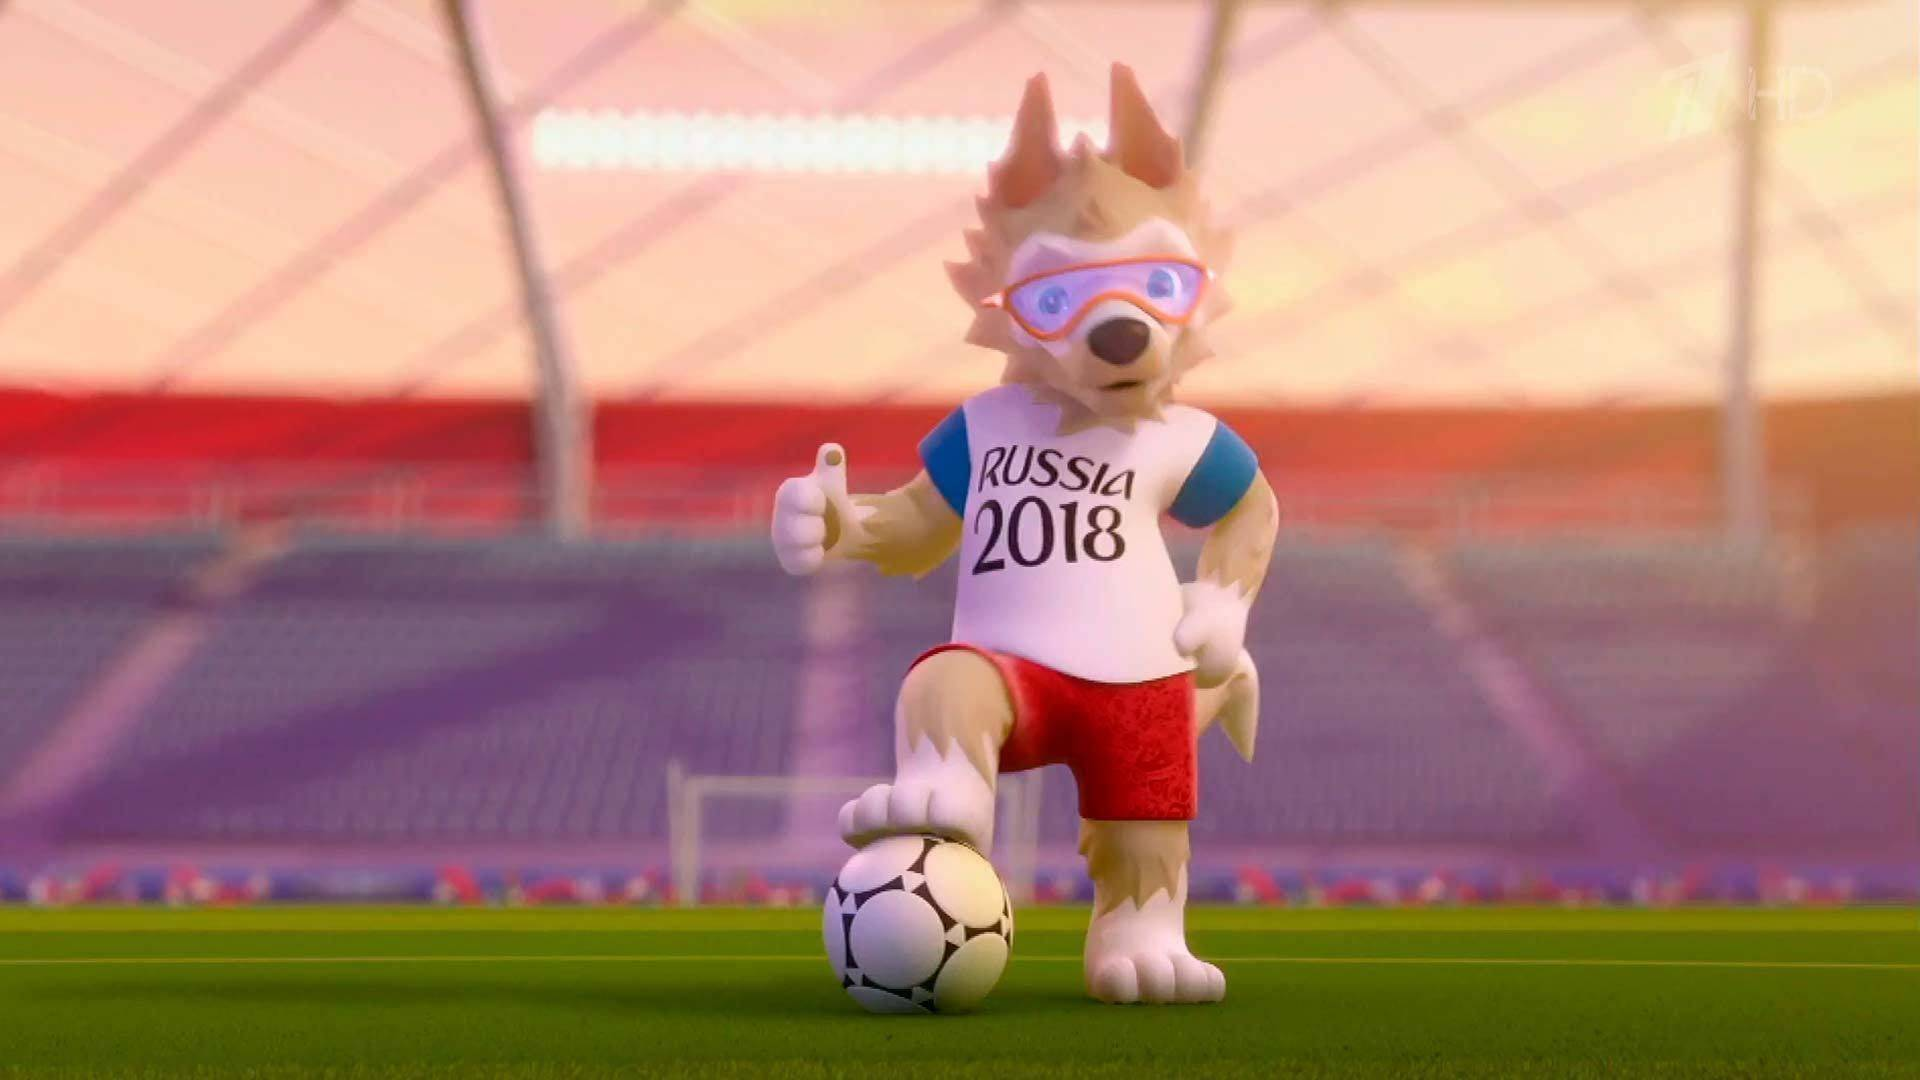 everything we know about fifa world cup 2018: russia - scout magazine